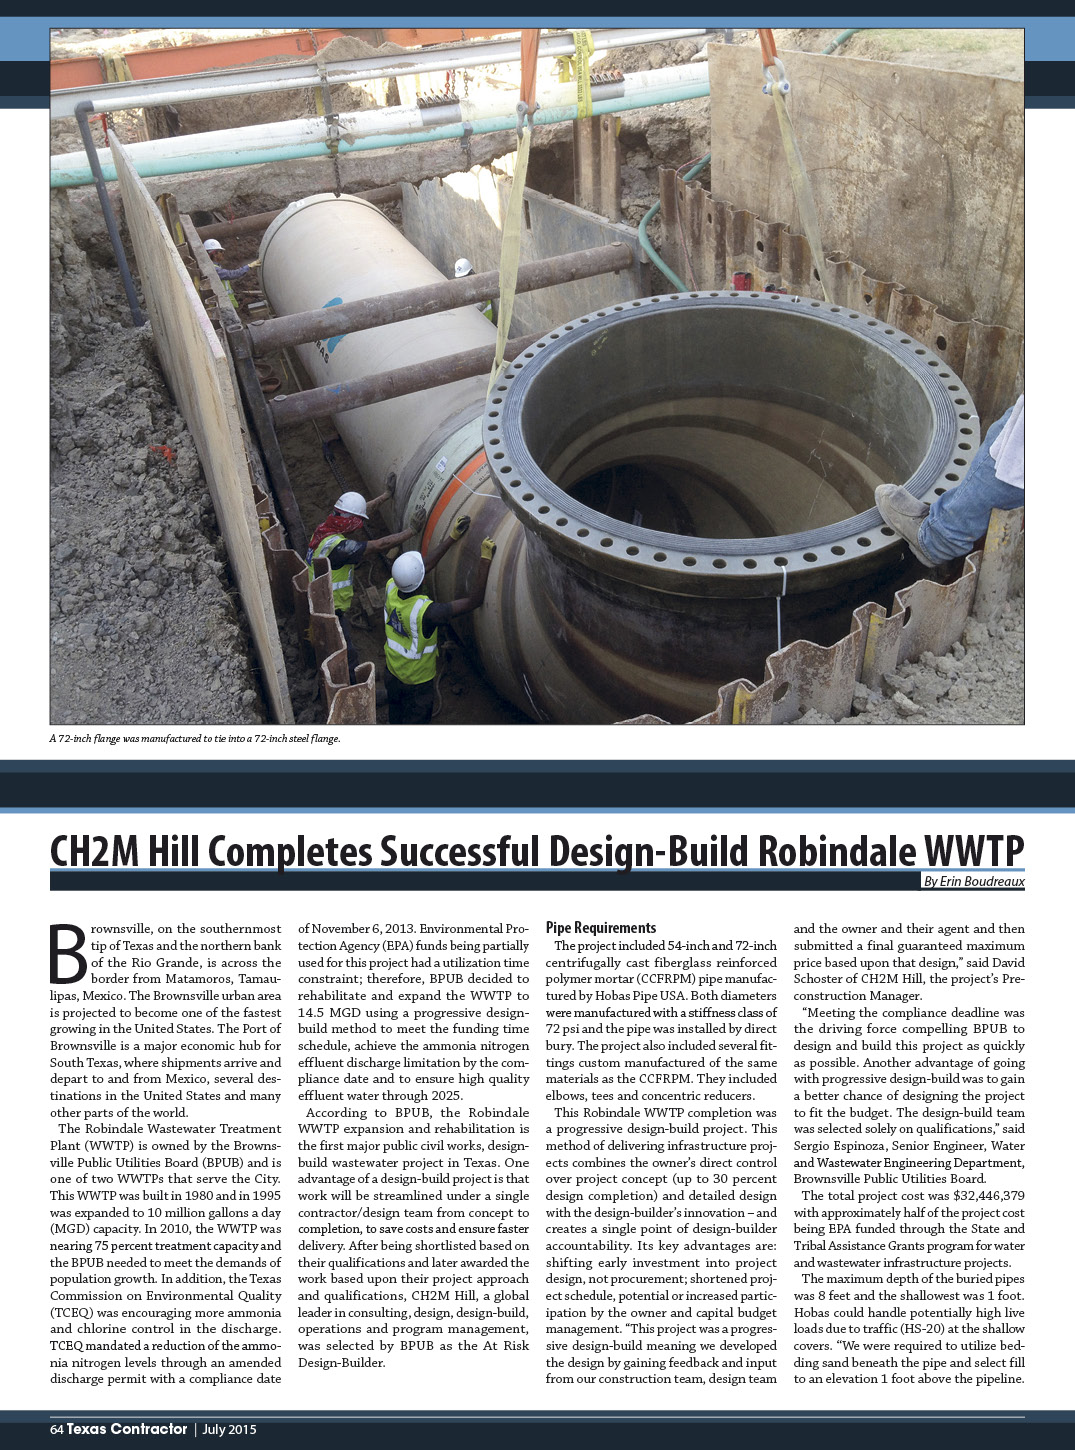 CH2M Hill Completes Successful Design-Build Robindale WWTP